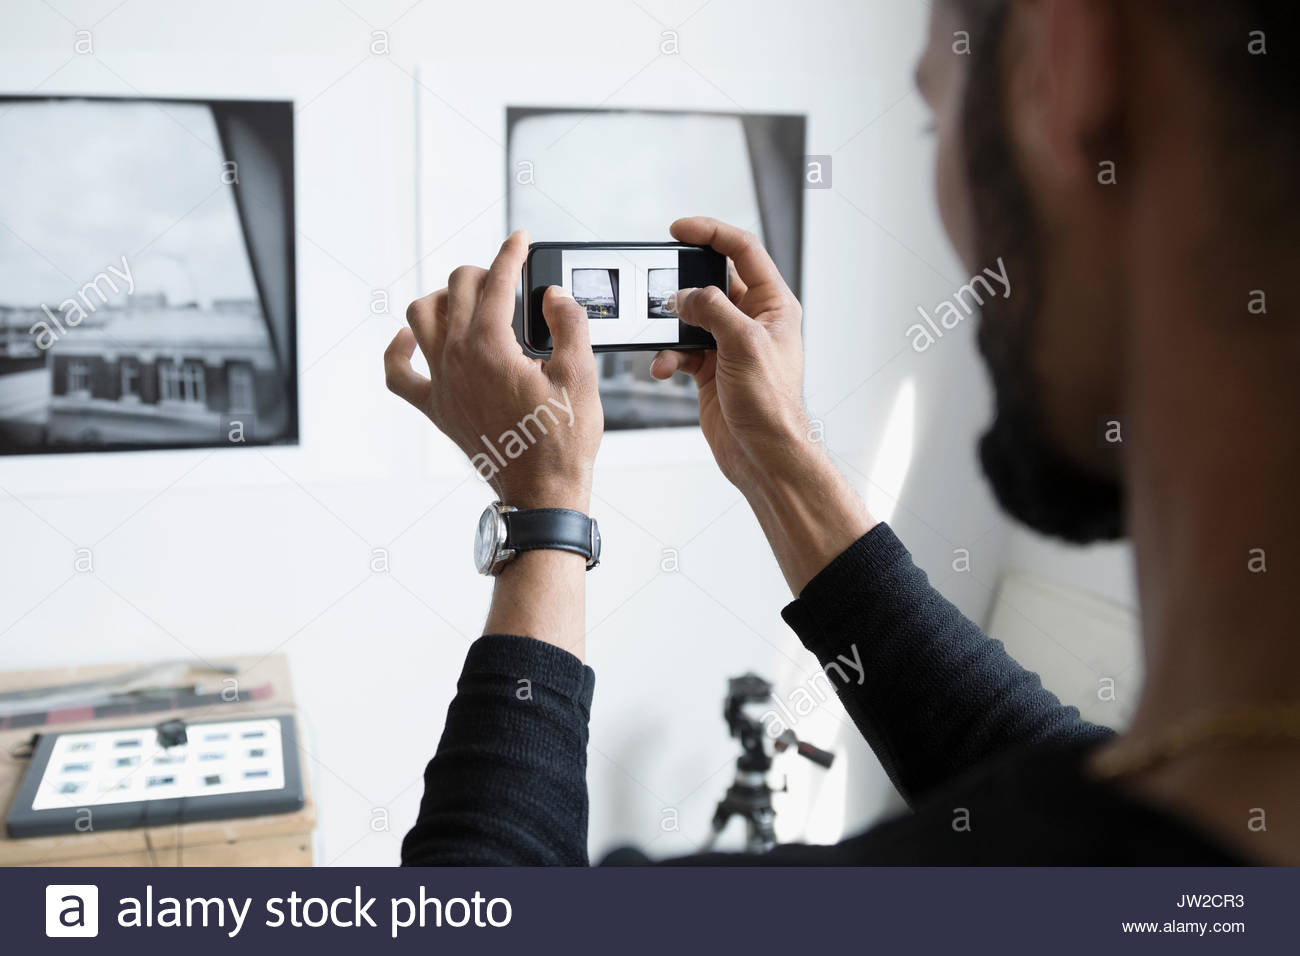 Male photographer with camera phone photographing prints on wall in art studio - Stock Image